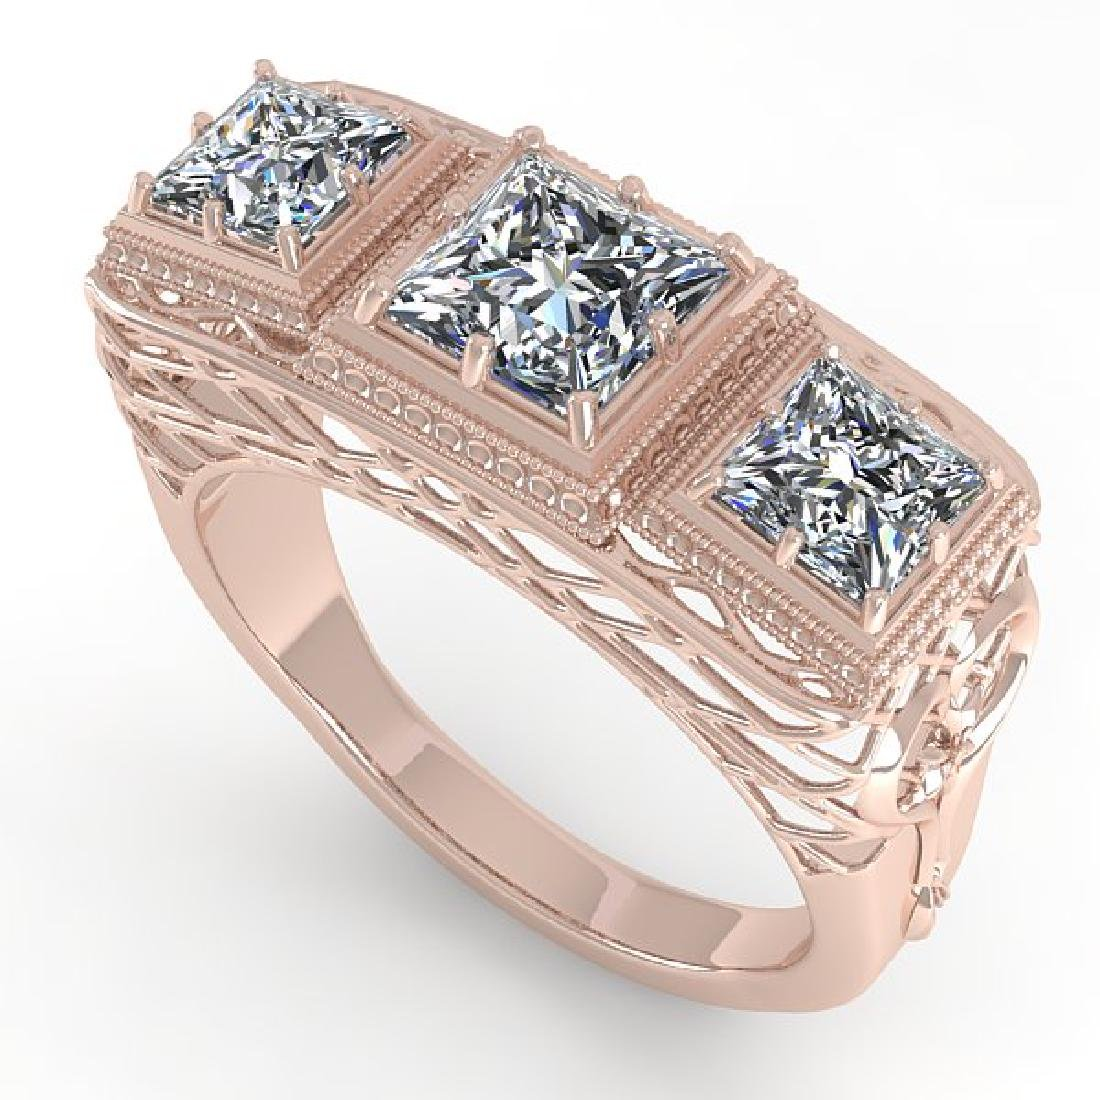 2 CTW VS/SI Princess Diamond Ring 14K Rose Gold - 2